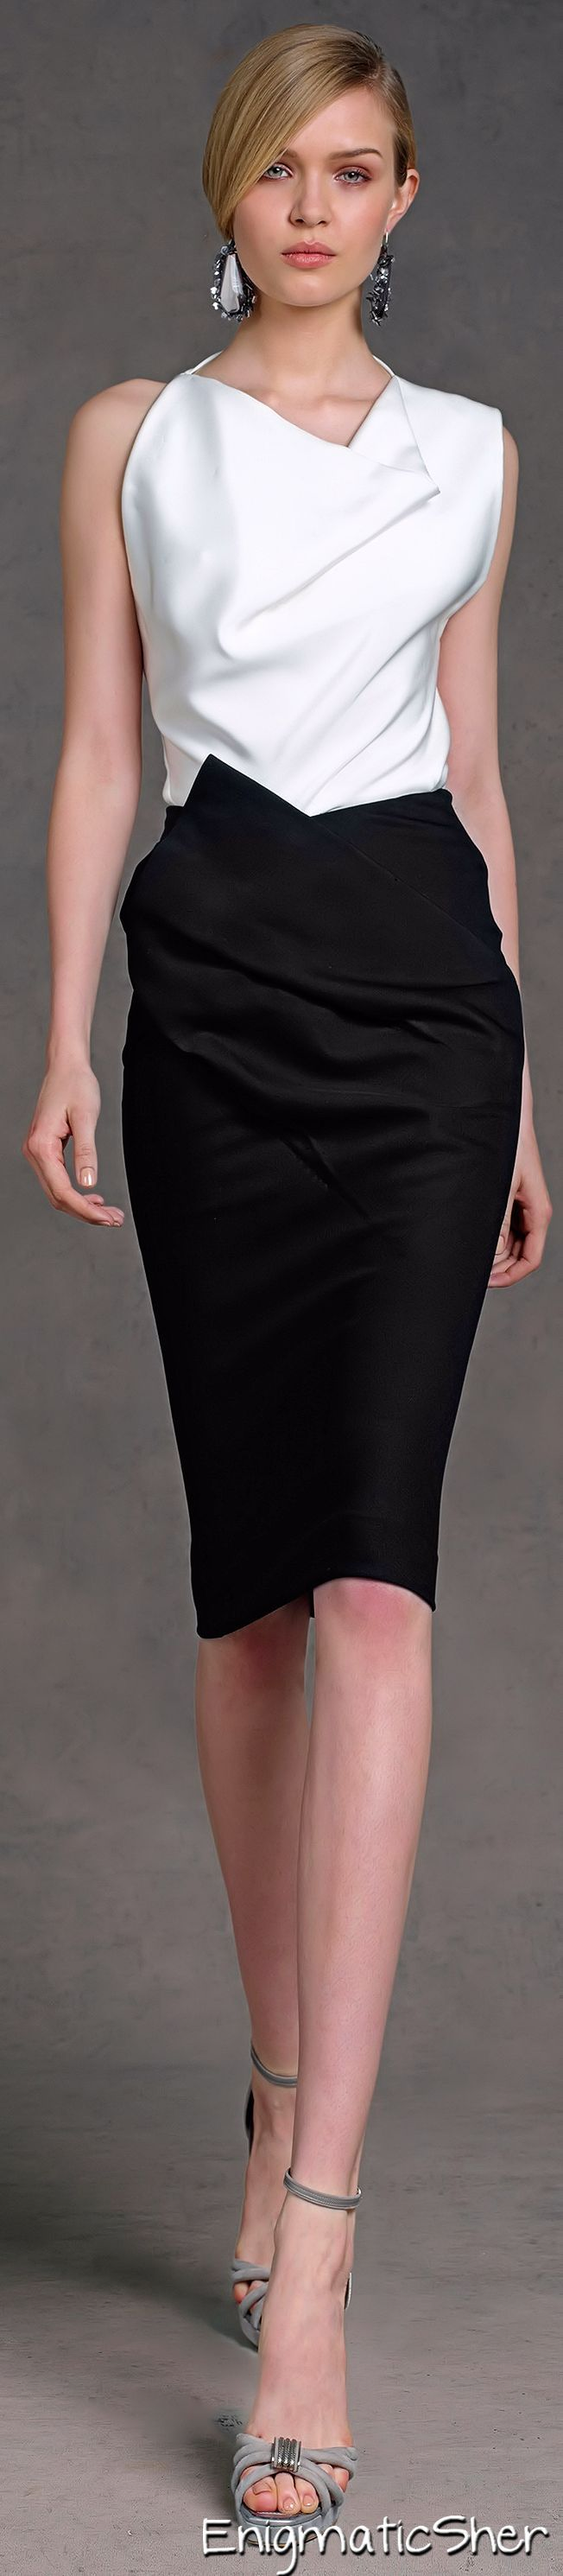 Donna Karan ~Latest Luxurious Women's Fashion – Haute Couture – dresses, jacke ...